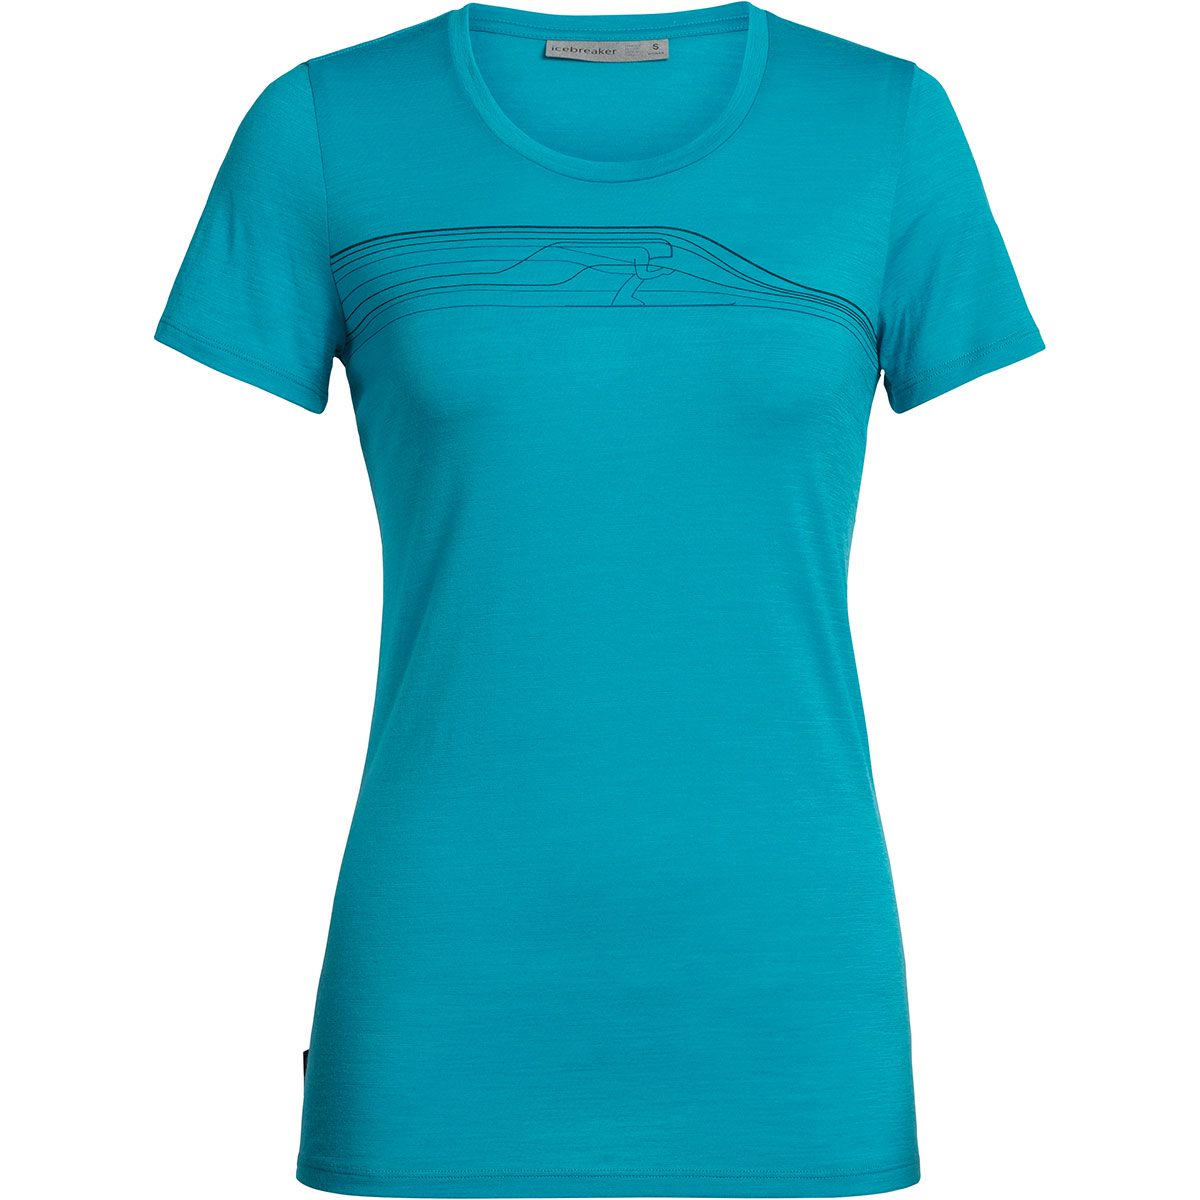 Icebreaker Damen Tech Lite Snow Speedster T-Shirt (Größe XS, Blau) | T-Shirts Funktion > Damen